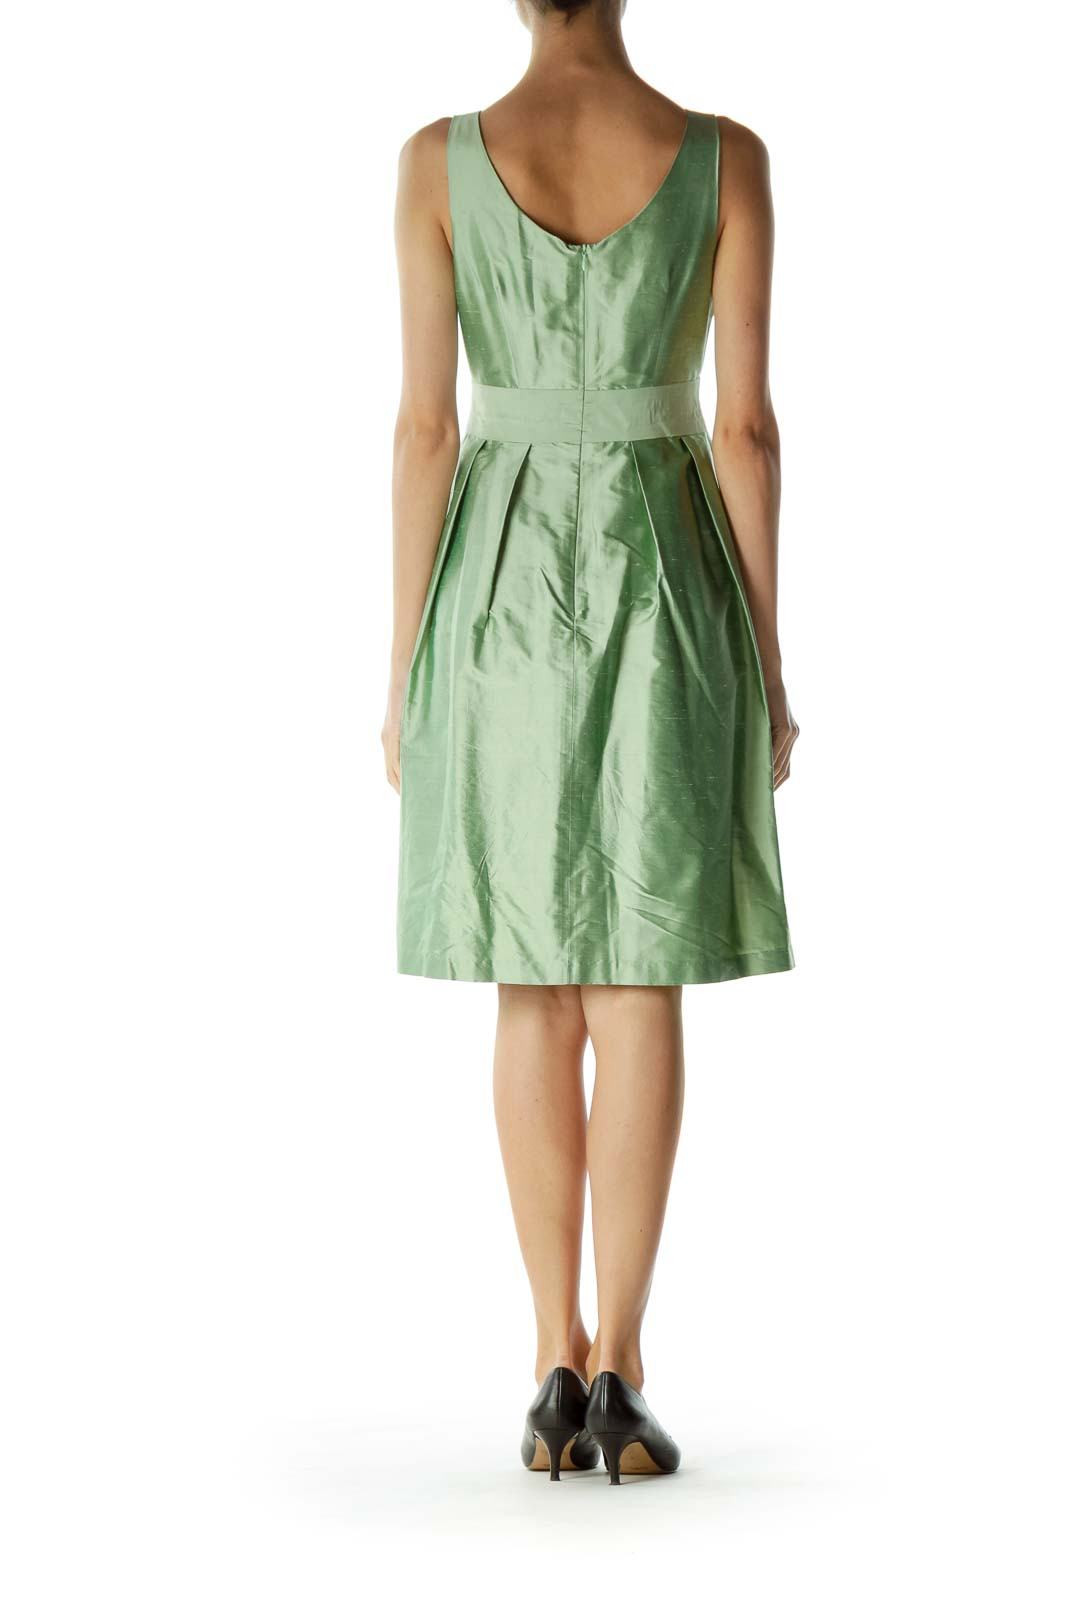 Green Boat Neck Sleeveless Cocktail Dress